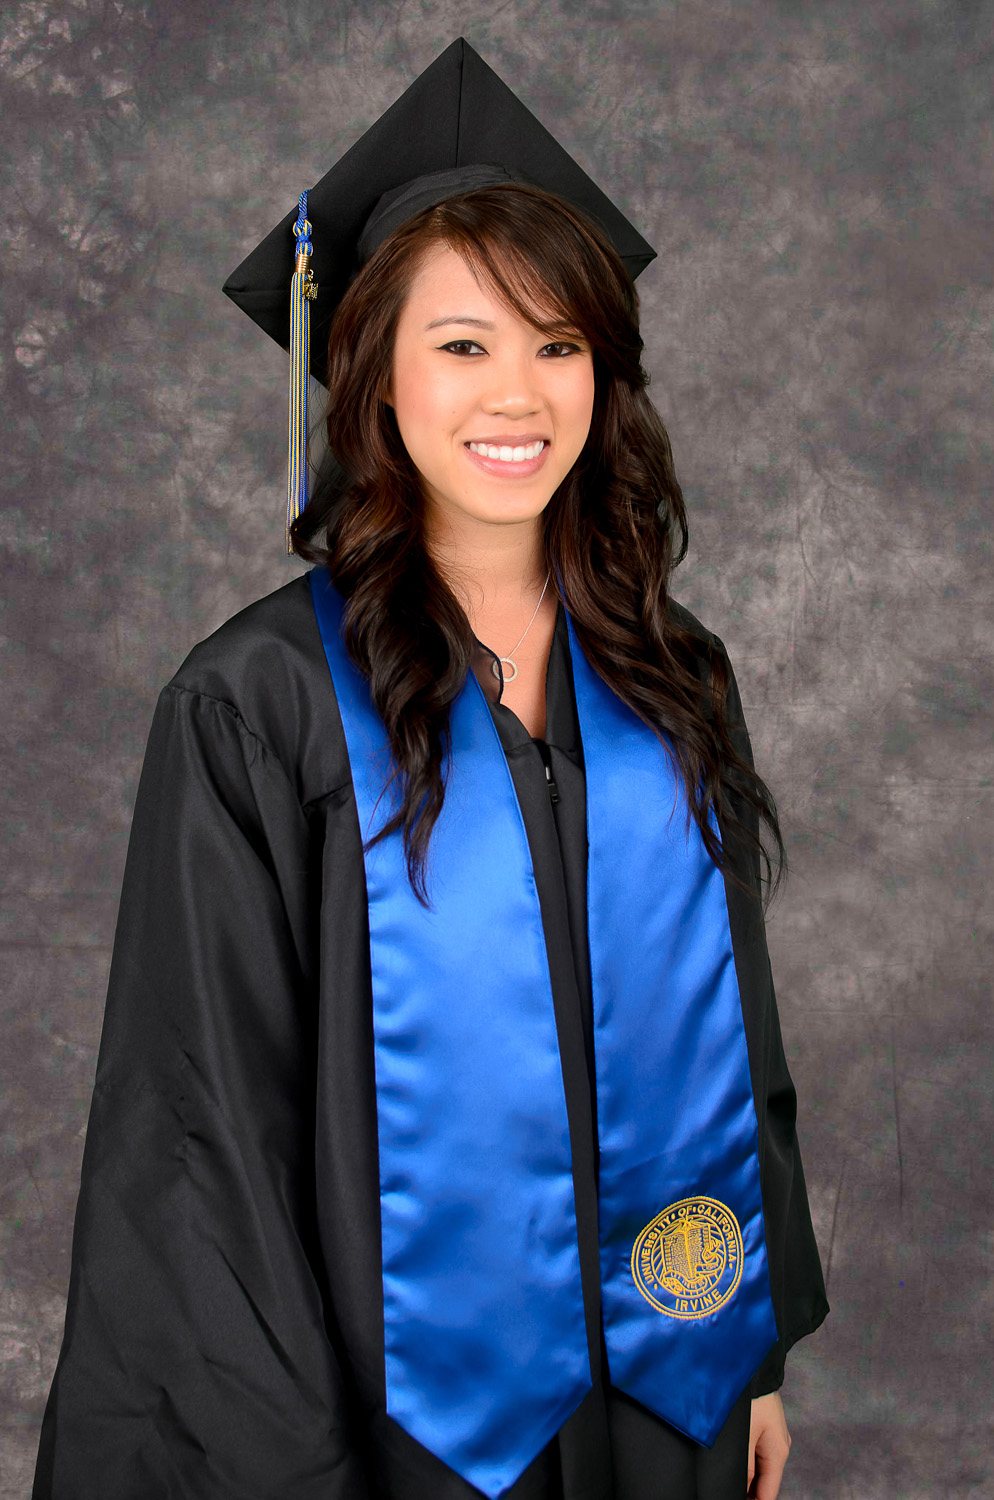 0001_Athena-Grad-Photos_Bryan_Miraflor_Photography.jpg